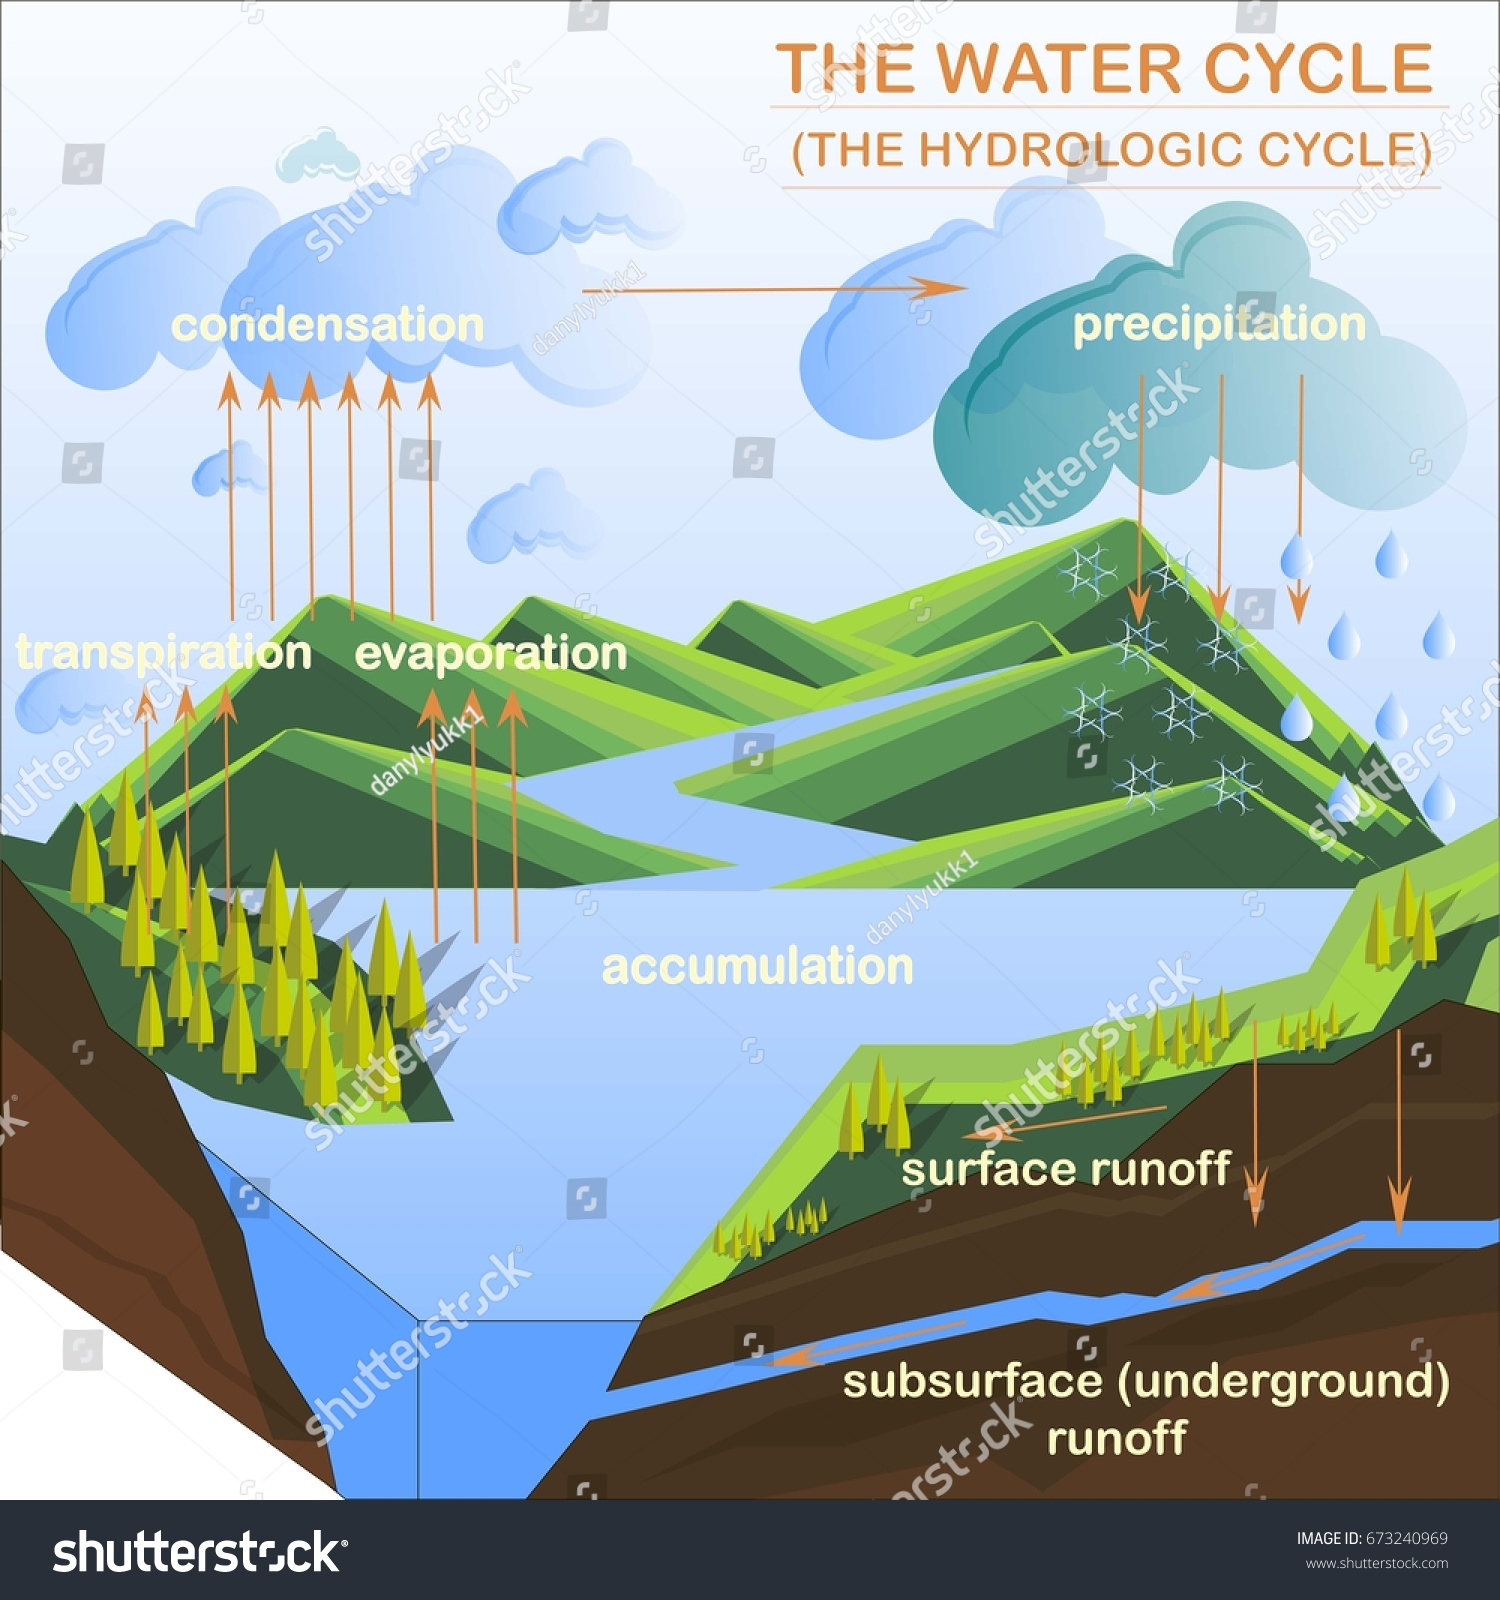 hight resolution of scheme of the water cycle flats design stock vector illustration